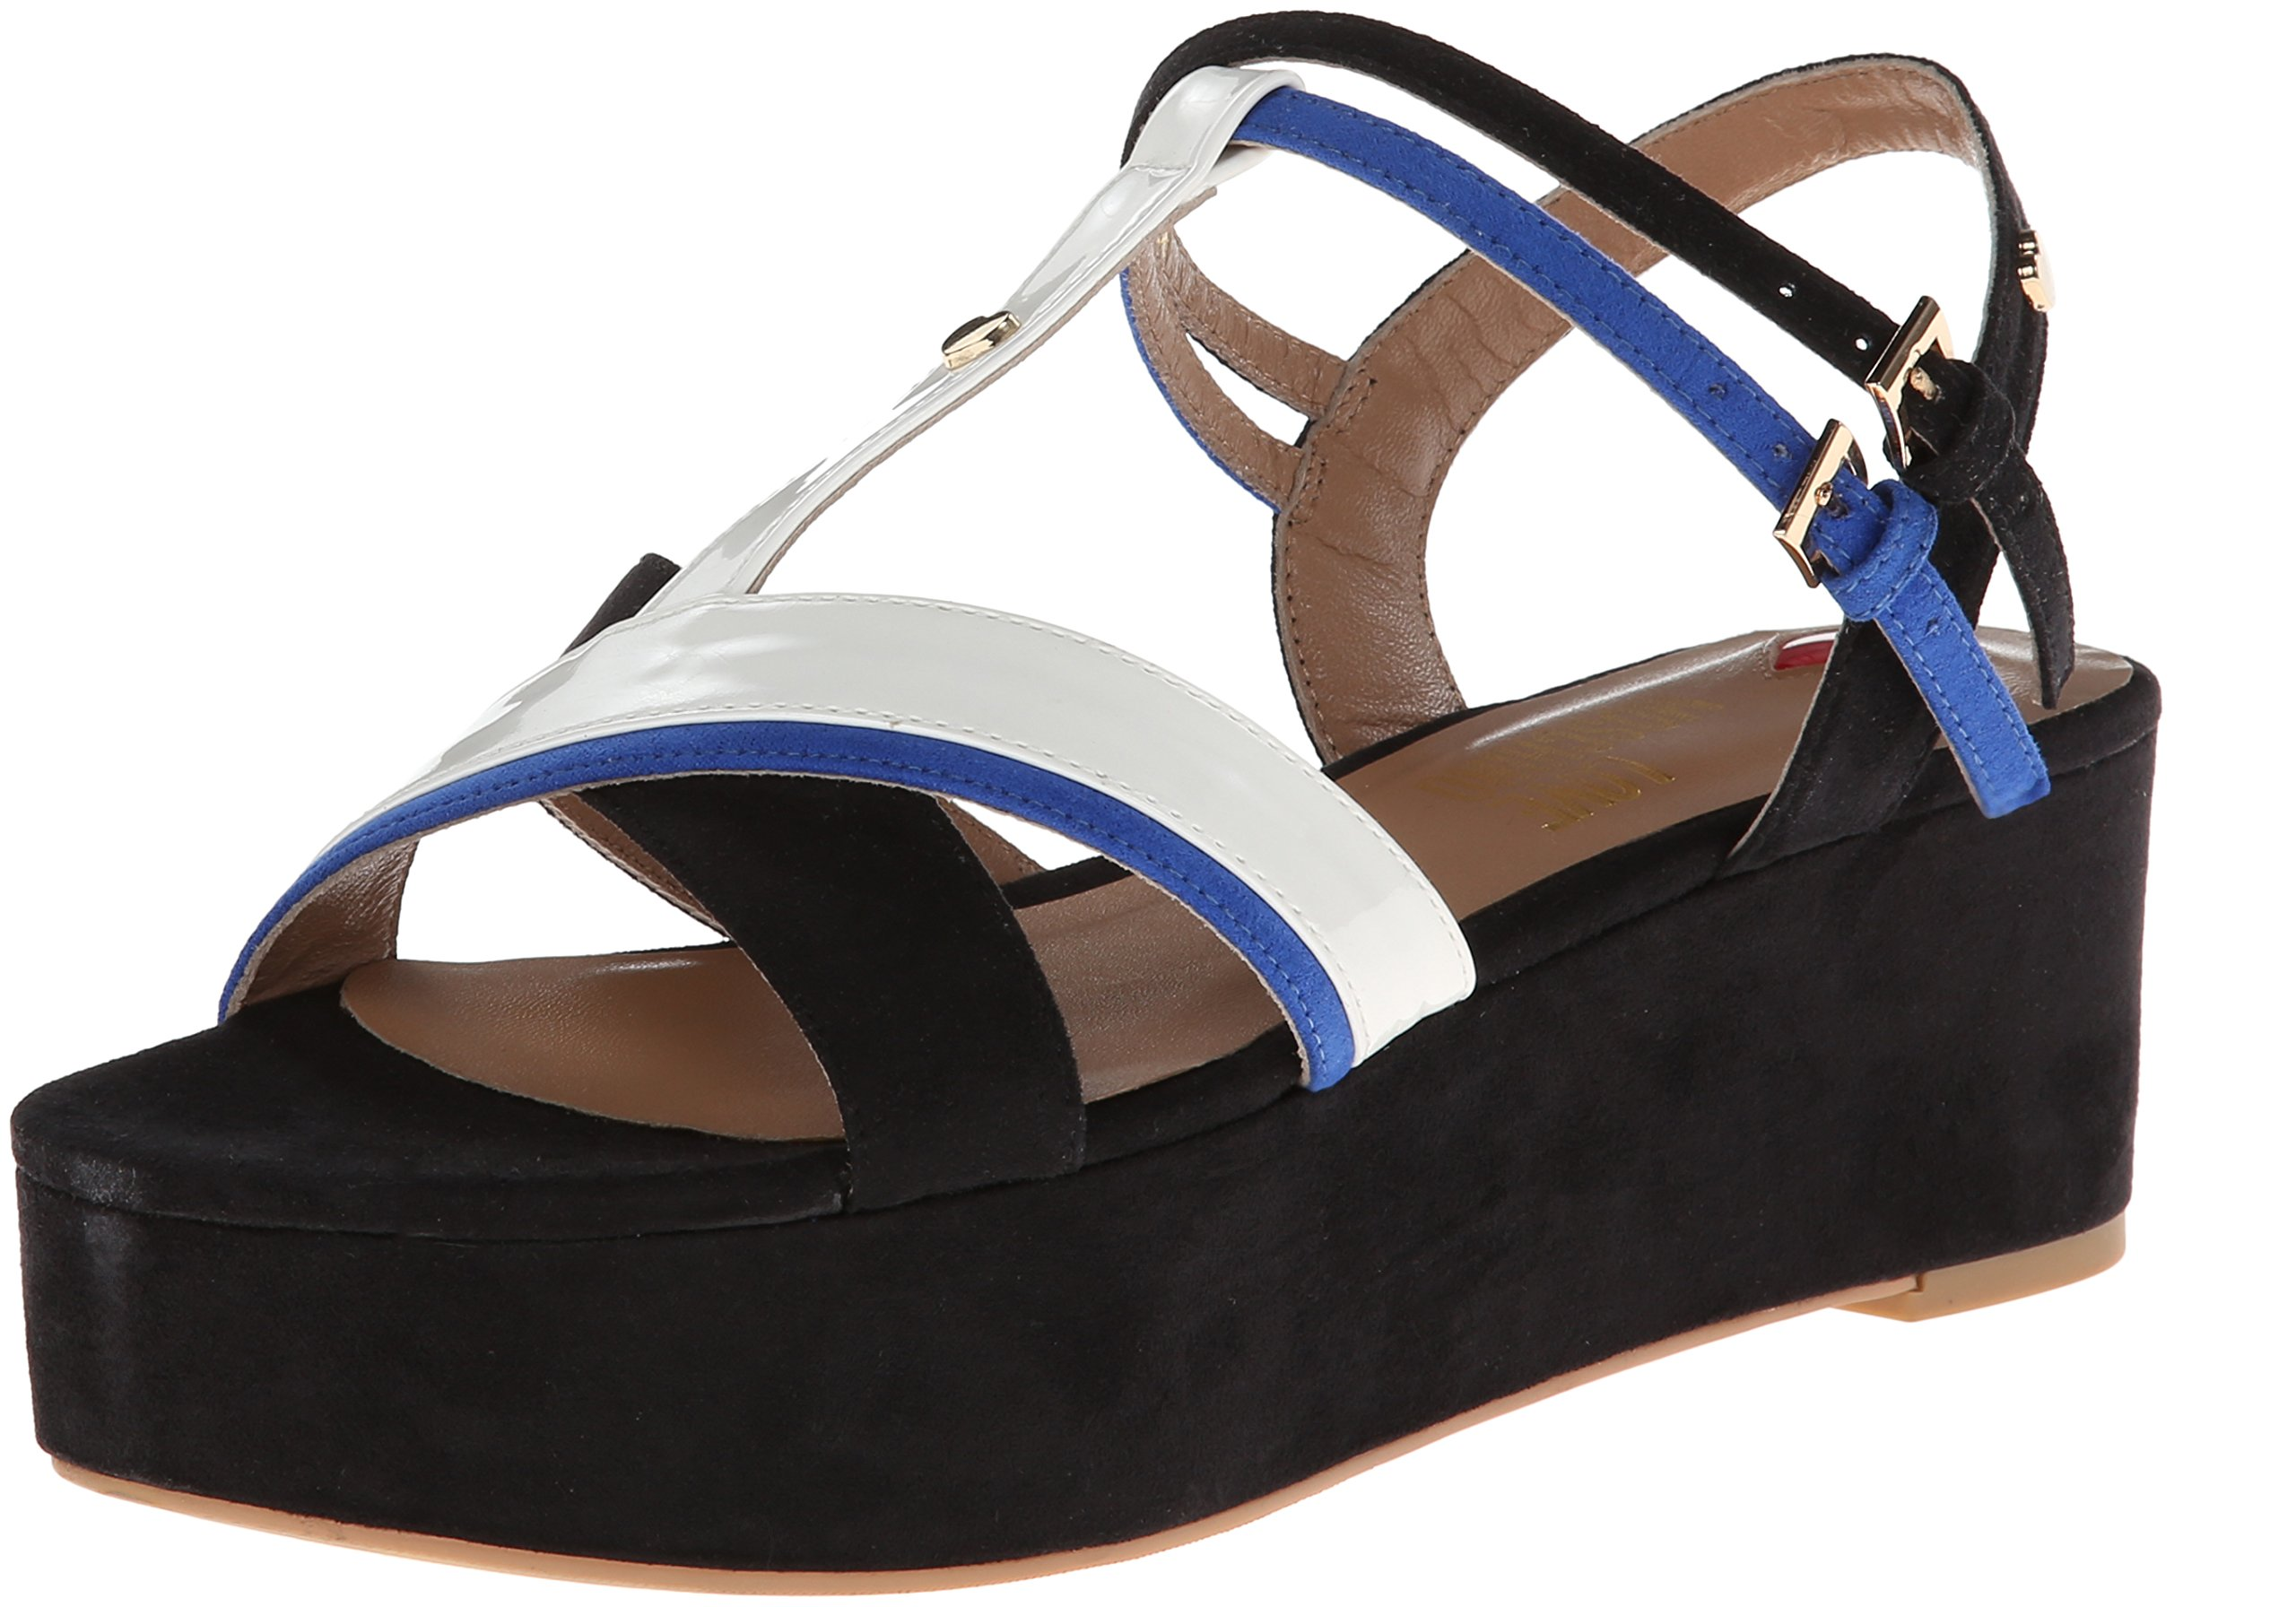 LOVE Moschino Women's Colorblock Strappy Sandal Black/Blue/White 37 (US Women's 7) M